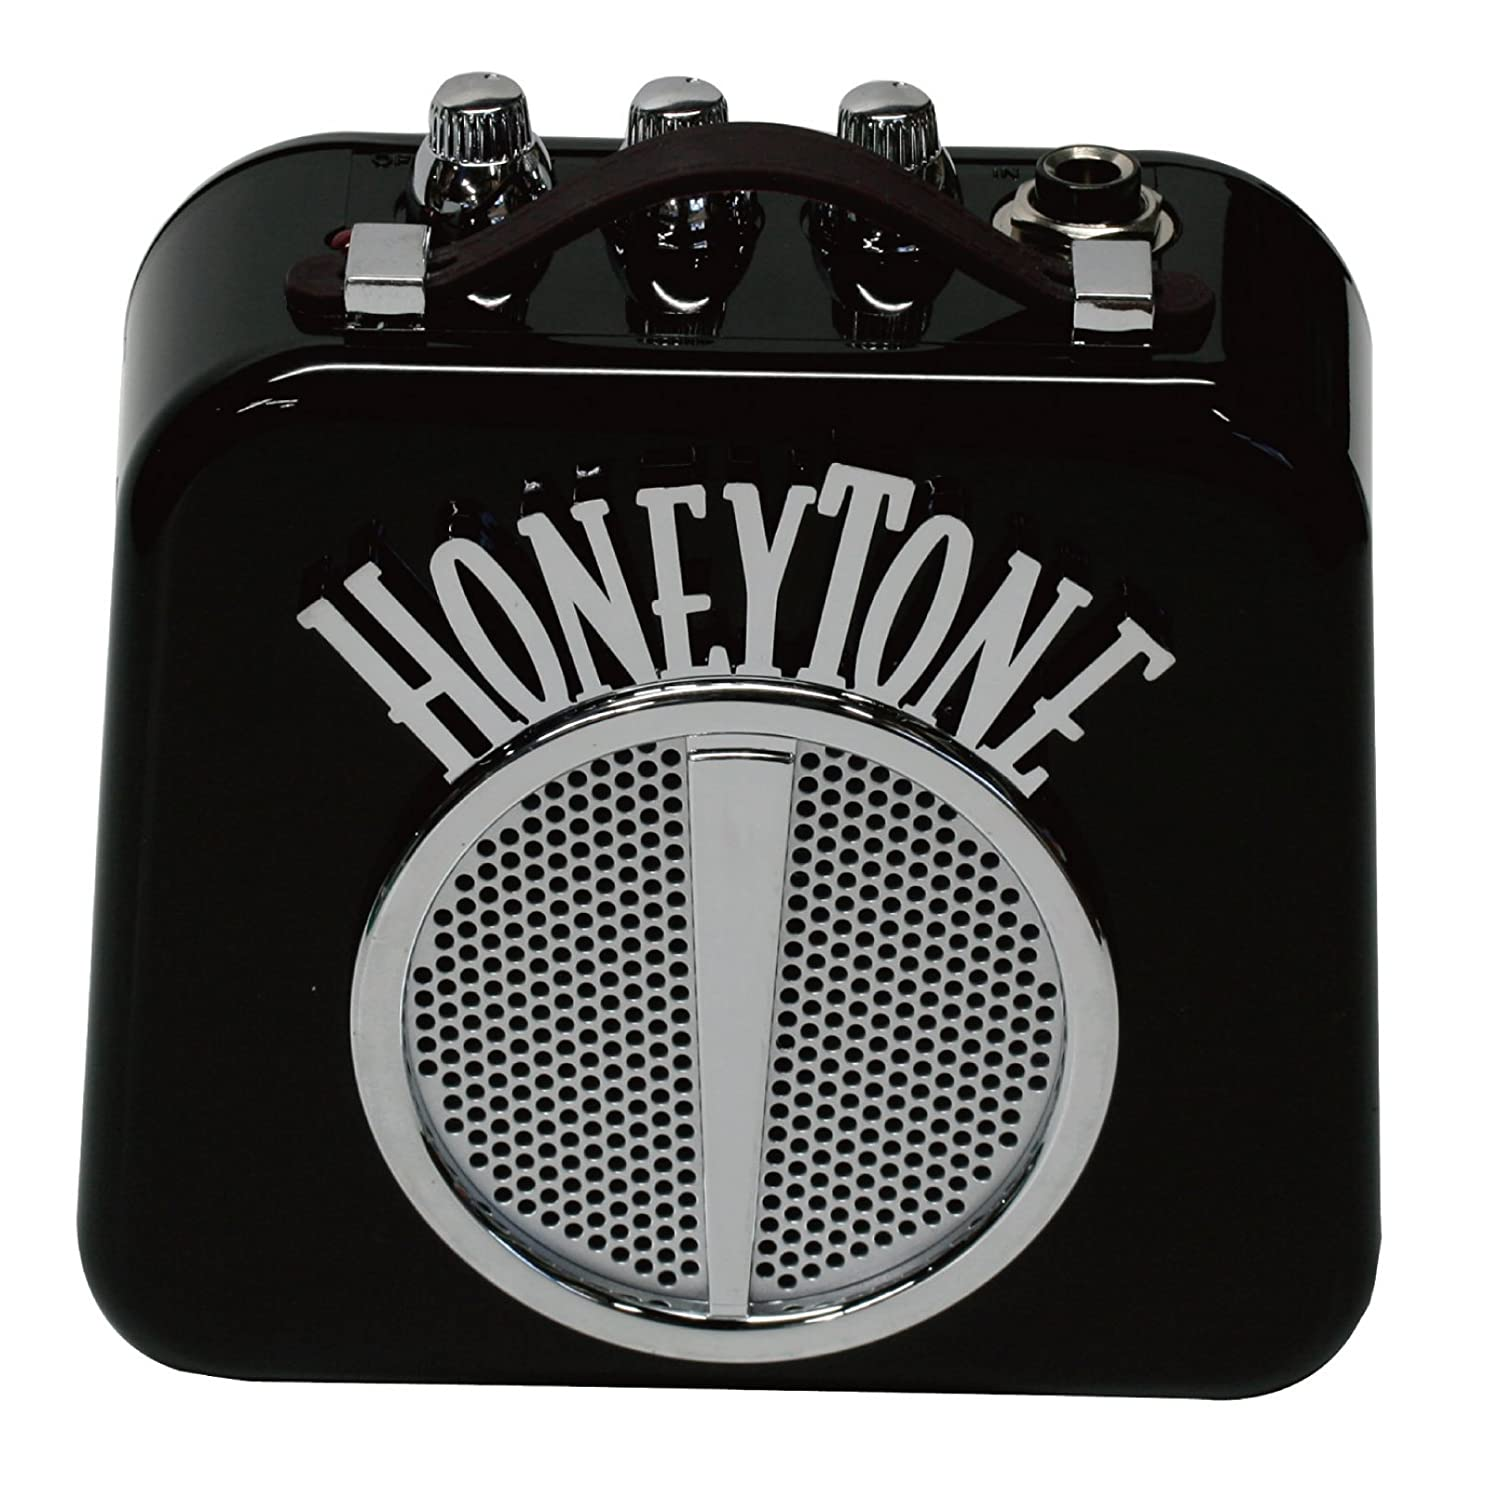 Danelectro Honeytone N  Guitar Mini Amp Black With Belt Clip